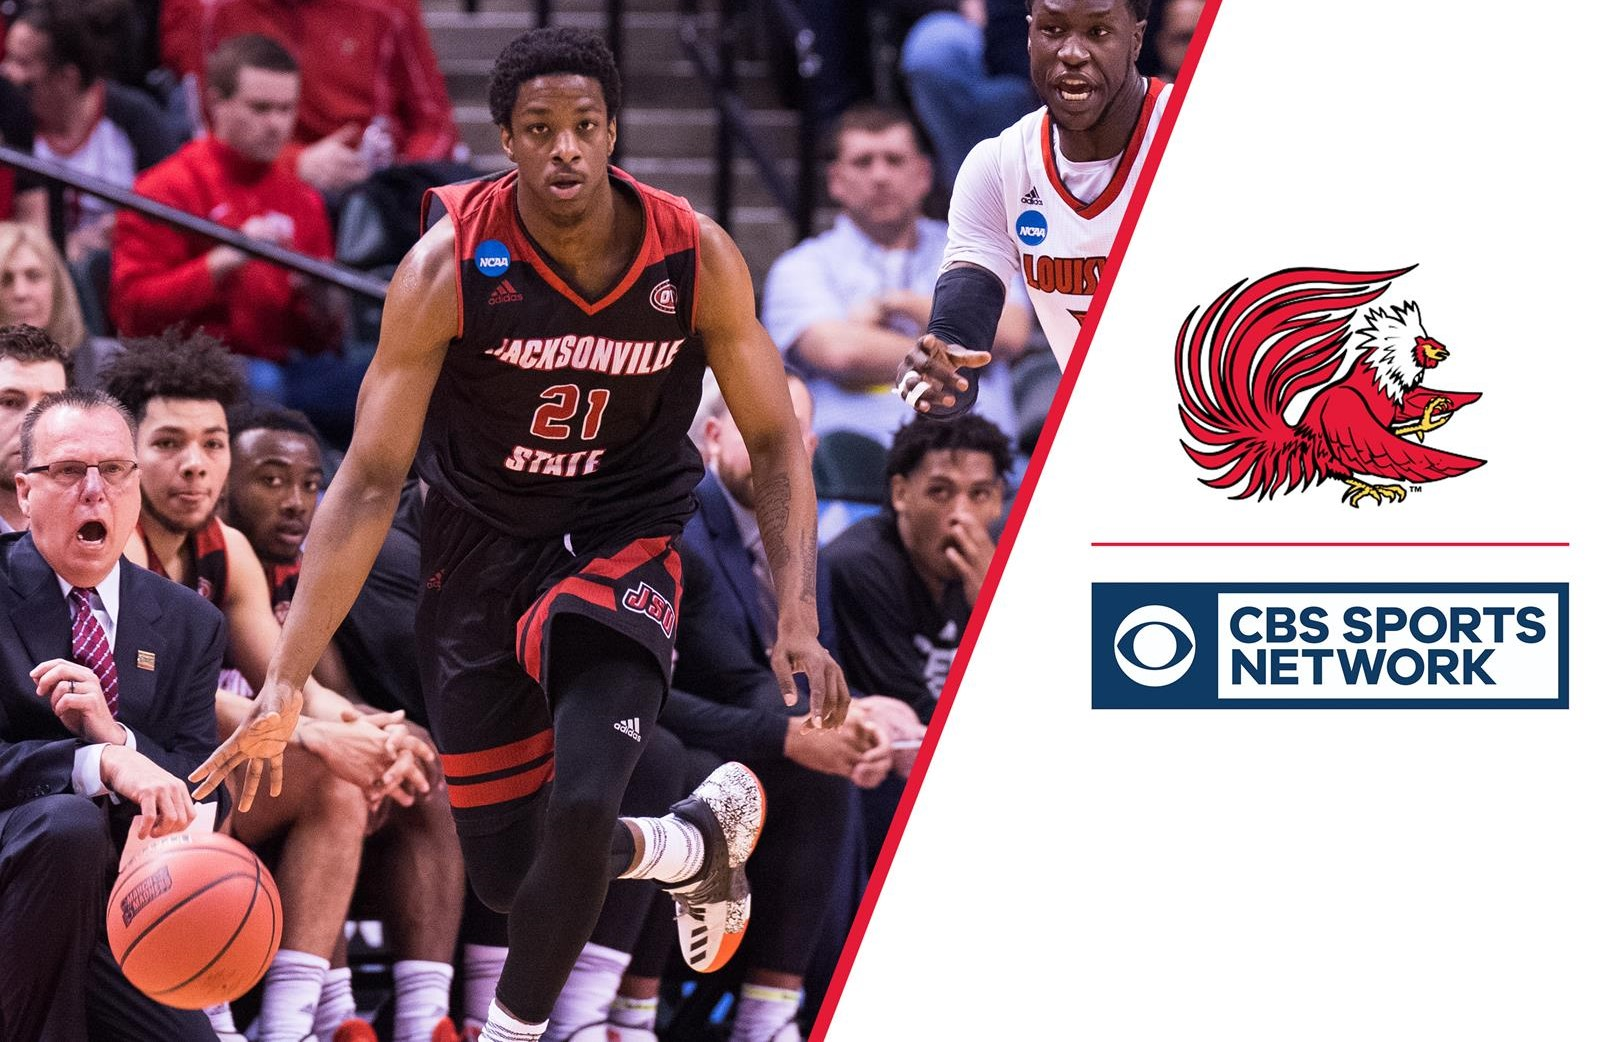 gamecocks announce cbs sports network game - jacksonville state